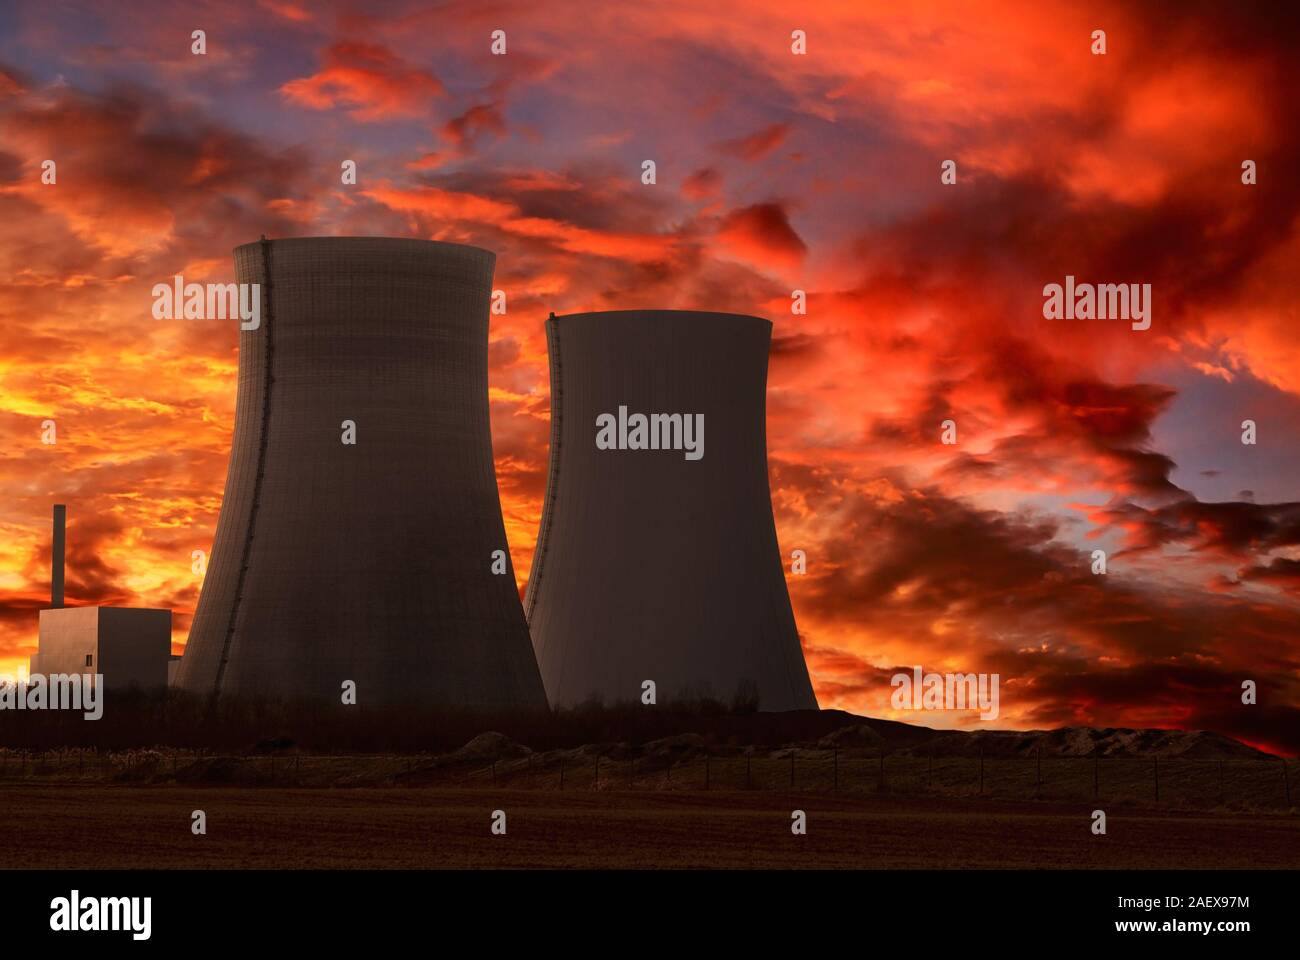 Nuclear power plant with an intense red and cloudy evening sky Stock Photo